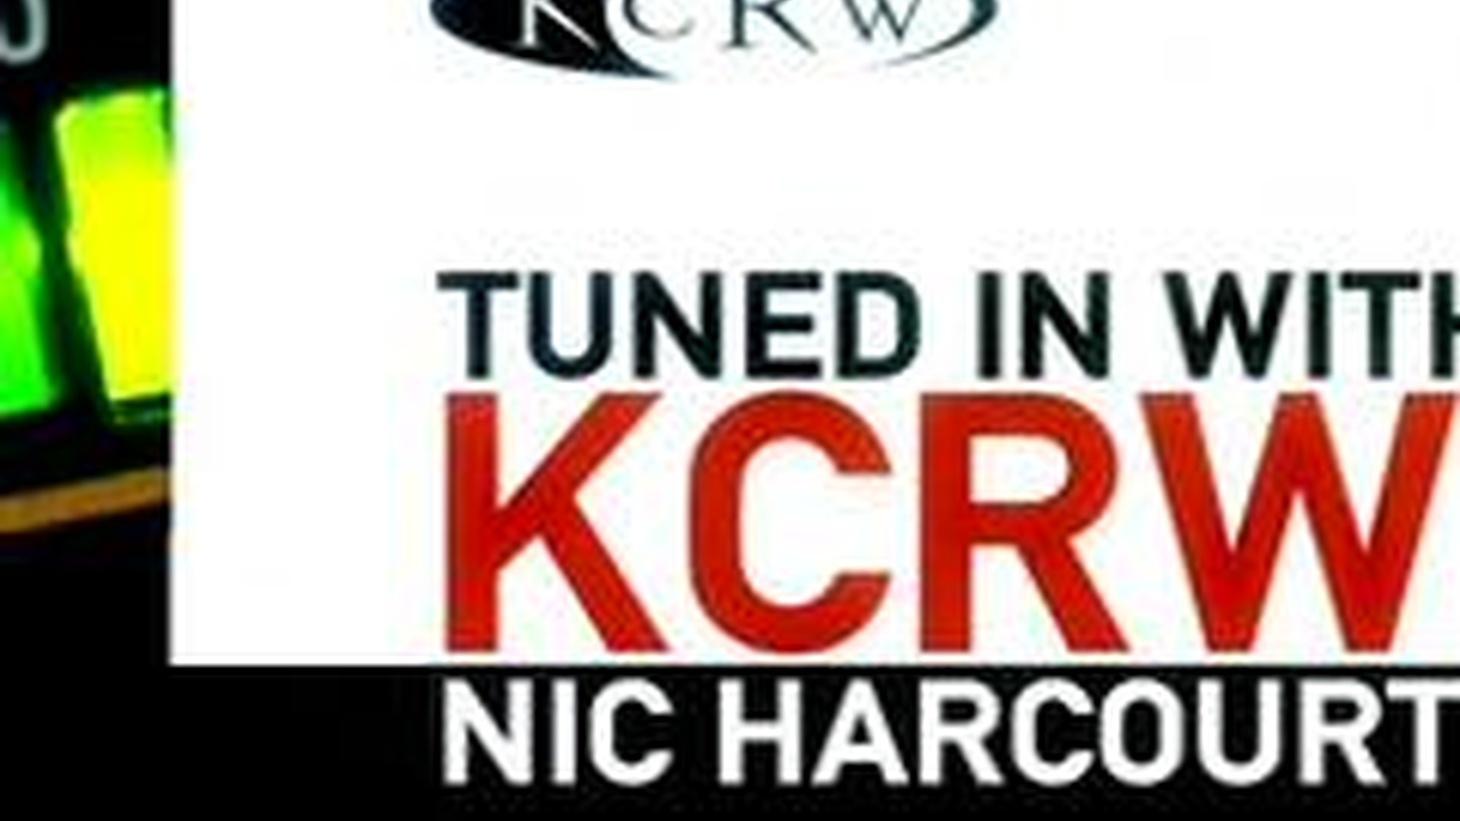 "In this episode, Nic Harcourt features songs from multi-Grammy Award winning songstress K.D. Lang (""Coming Home"" from WATERSHED), Mia Doi Todd (""Night of a Thousand Kisses"" from GEA), and Pete Rock (""Folsom Prison Blues"" from JOHNNY CASH REMIXED), plus a video clip from Her Space Holiday (""Sleepy Tigers"" from XOXO PANDA AND THE NEW KID REVIVAL) created exclusively for Nic Harcourt and Tuned In."